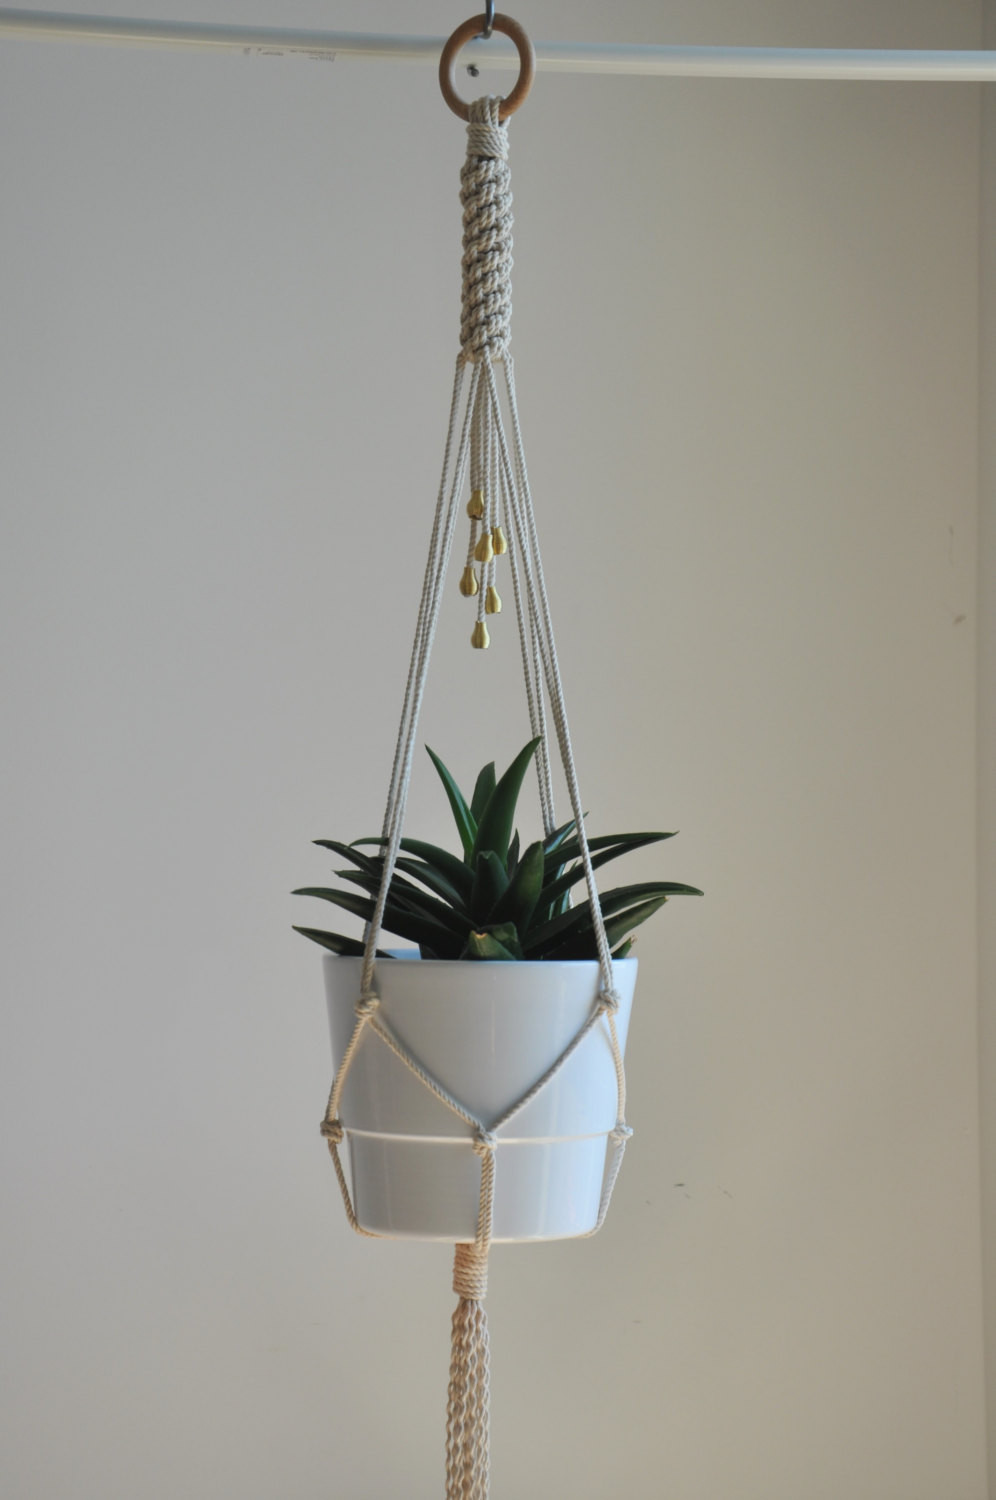 Macrame Plant Holder Inspirational Macrame Wall Hangings & Plant Hangers Buy or Diy Of Luxury 45 Images Macrame Plant Holder